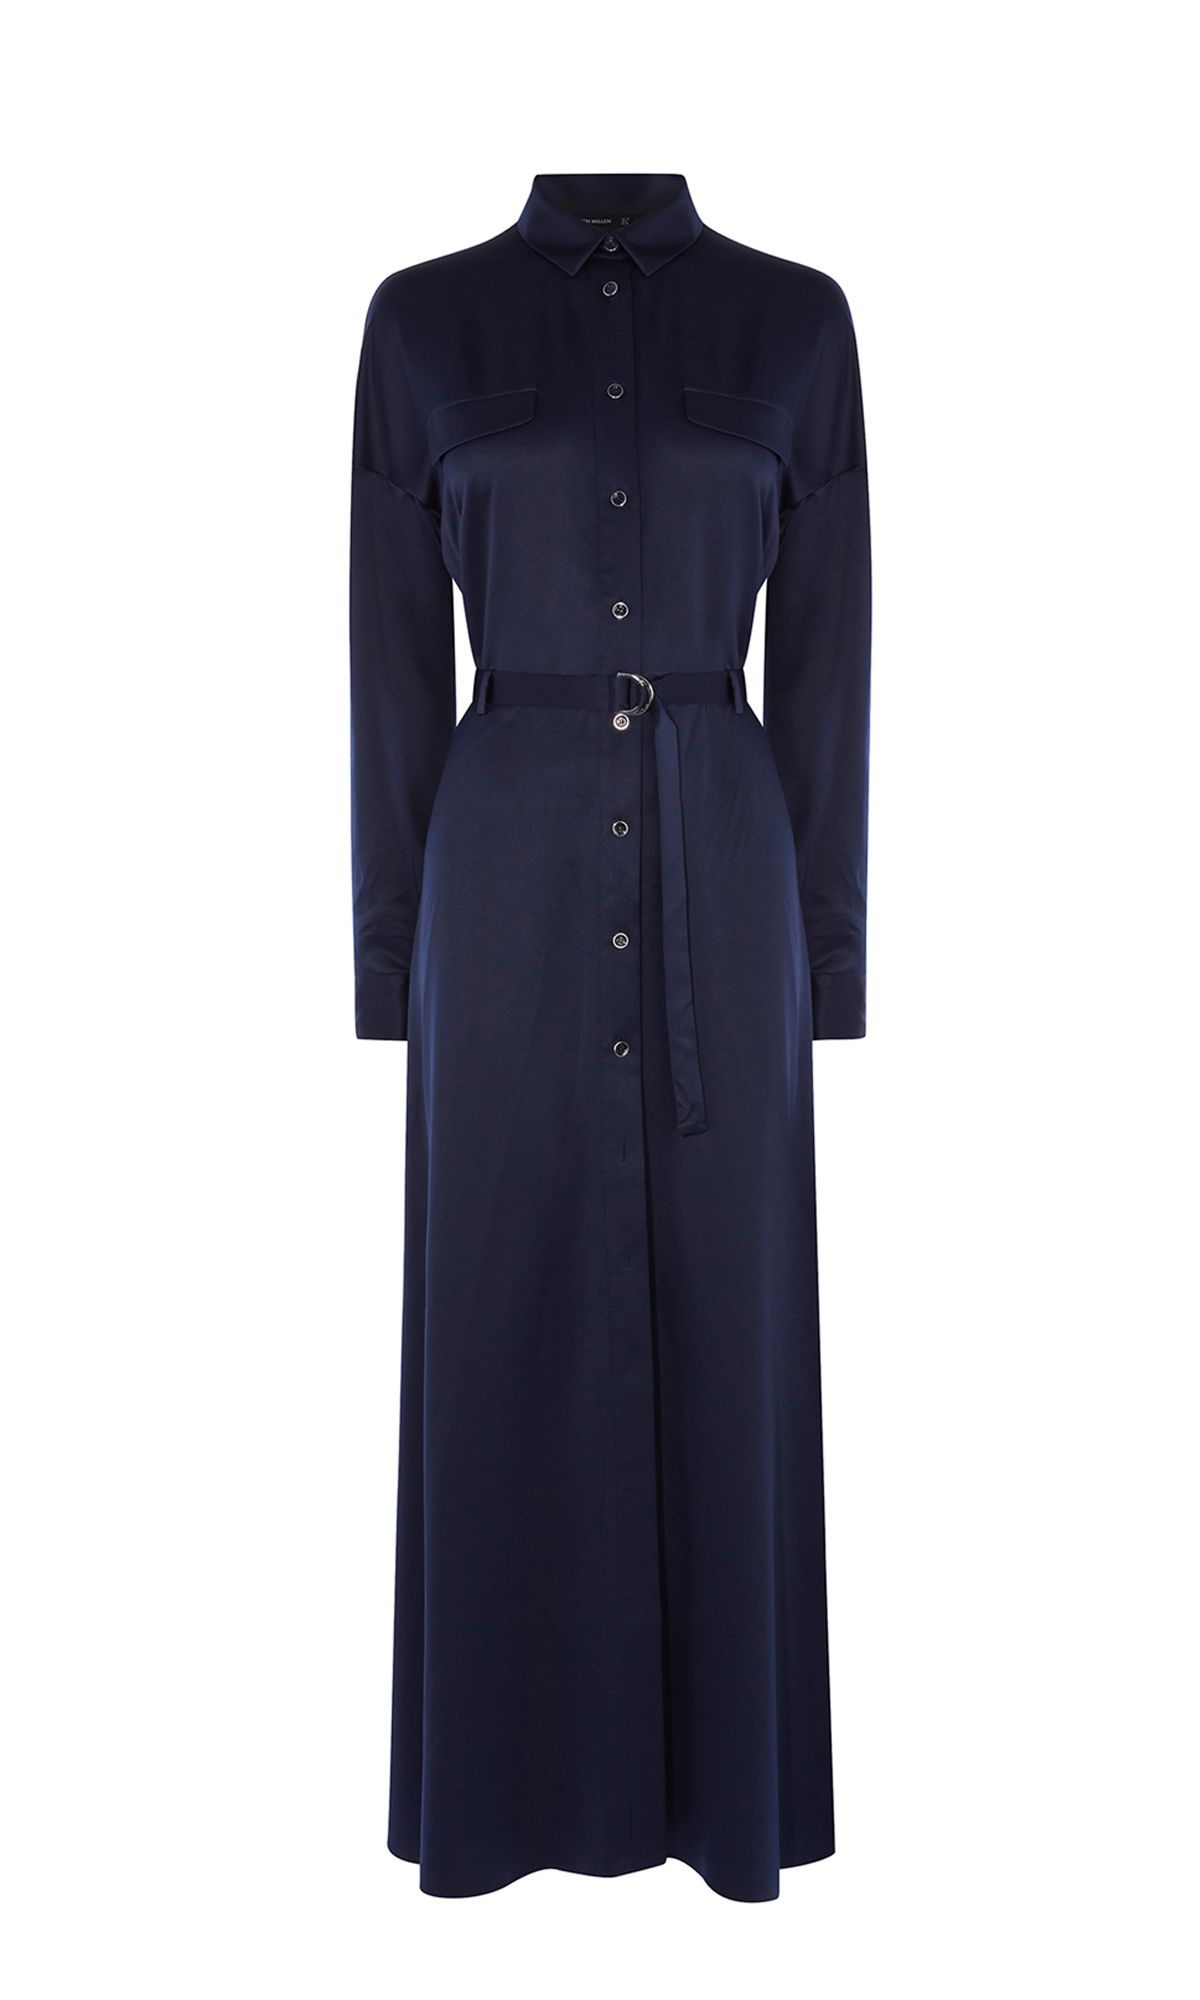 Karen Millen Satin Maxi Shirt Dress, Blue